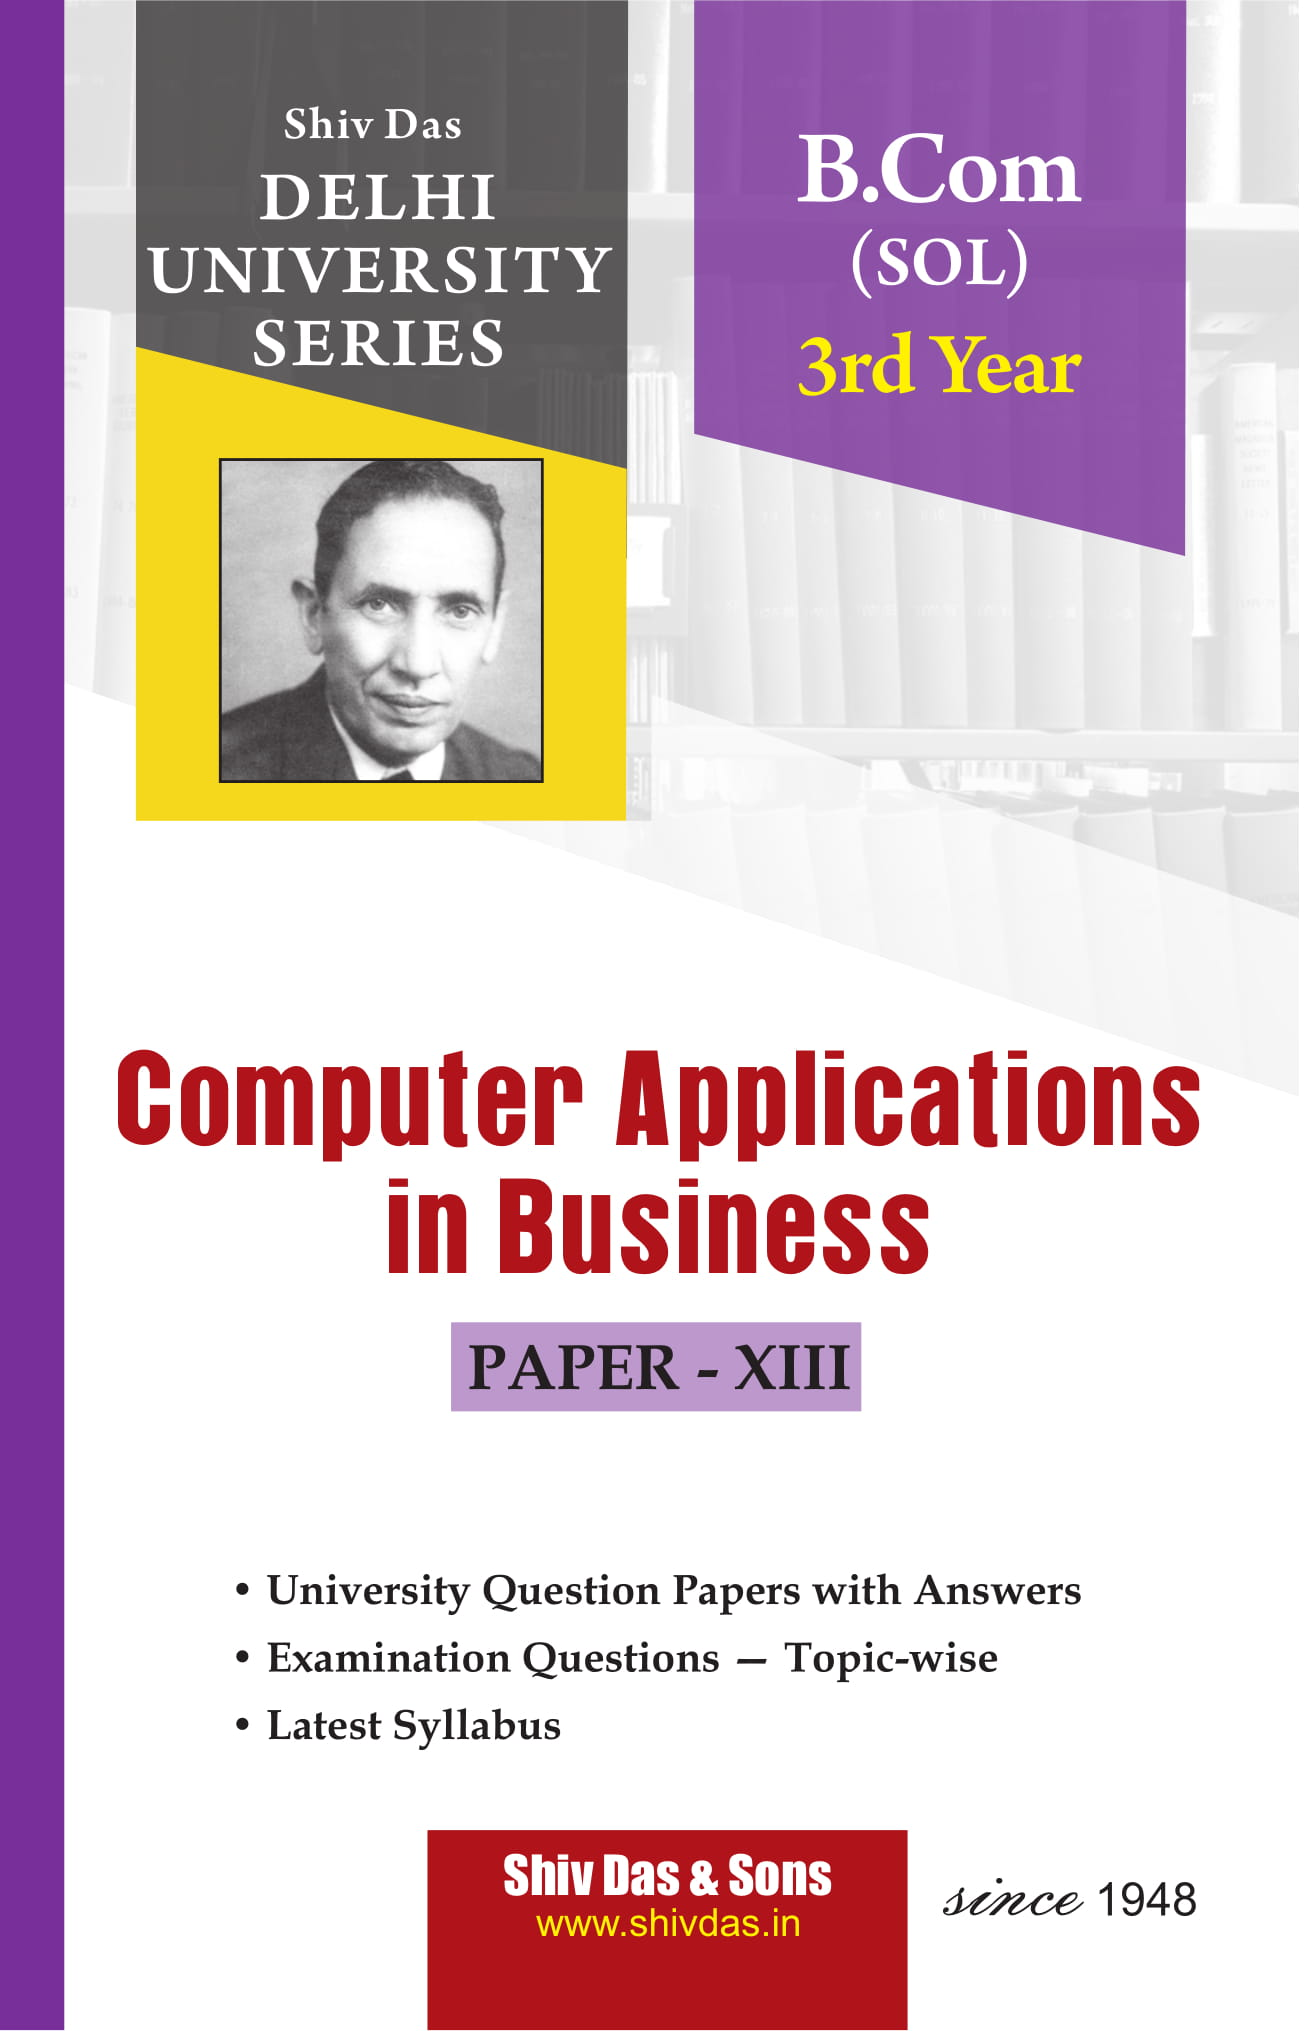 Computer Applications in Business (Eng. Medium) for B.Com 3rd Year SOL/External